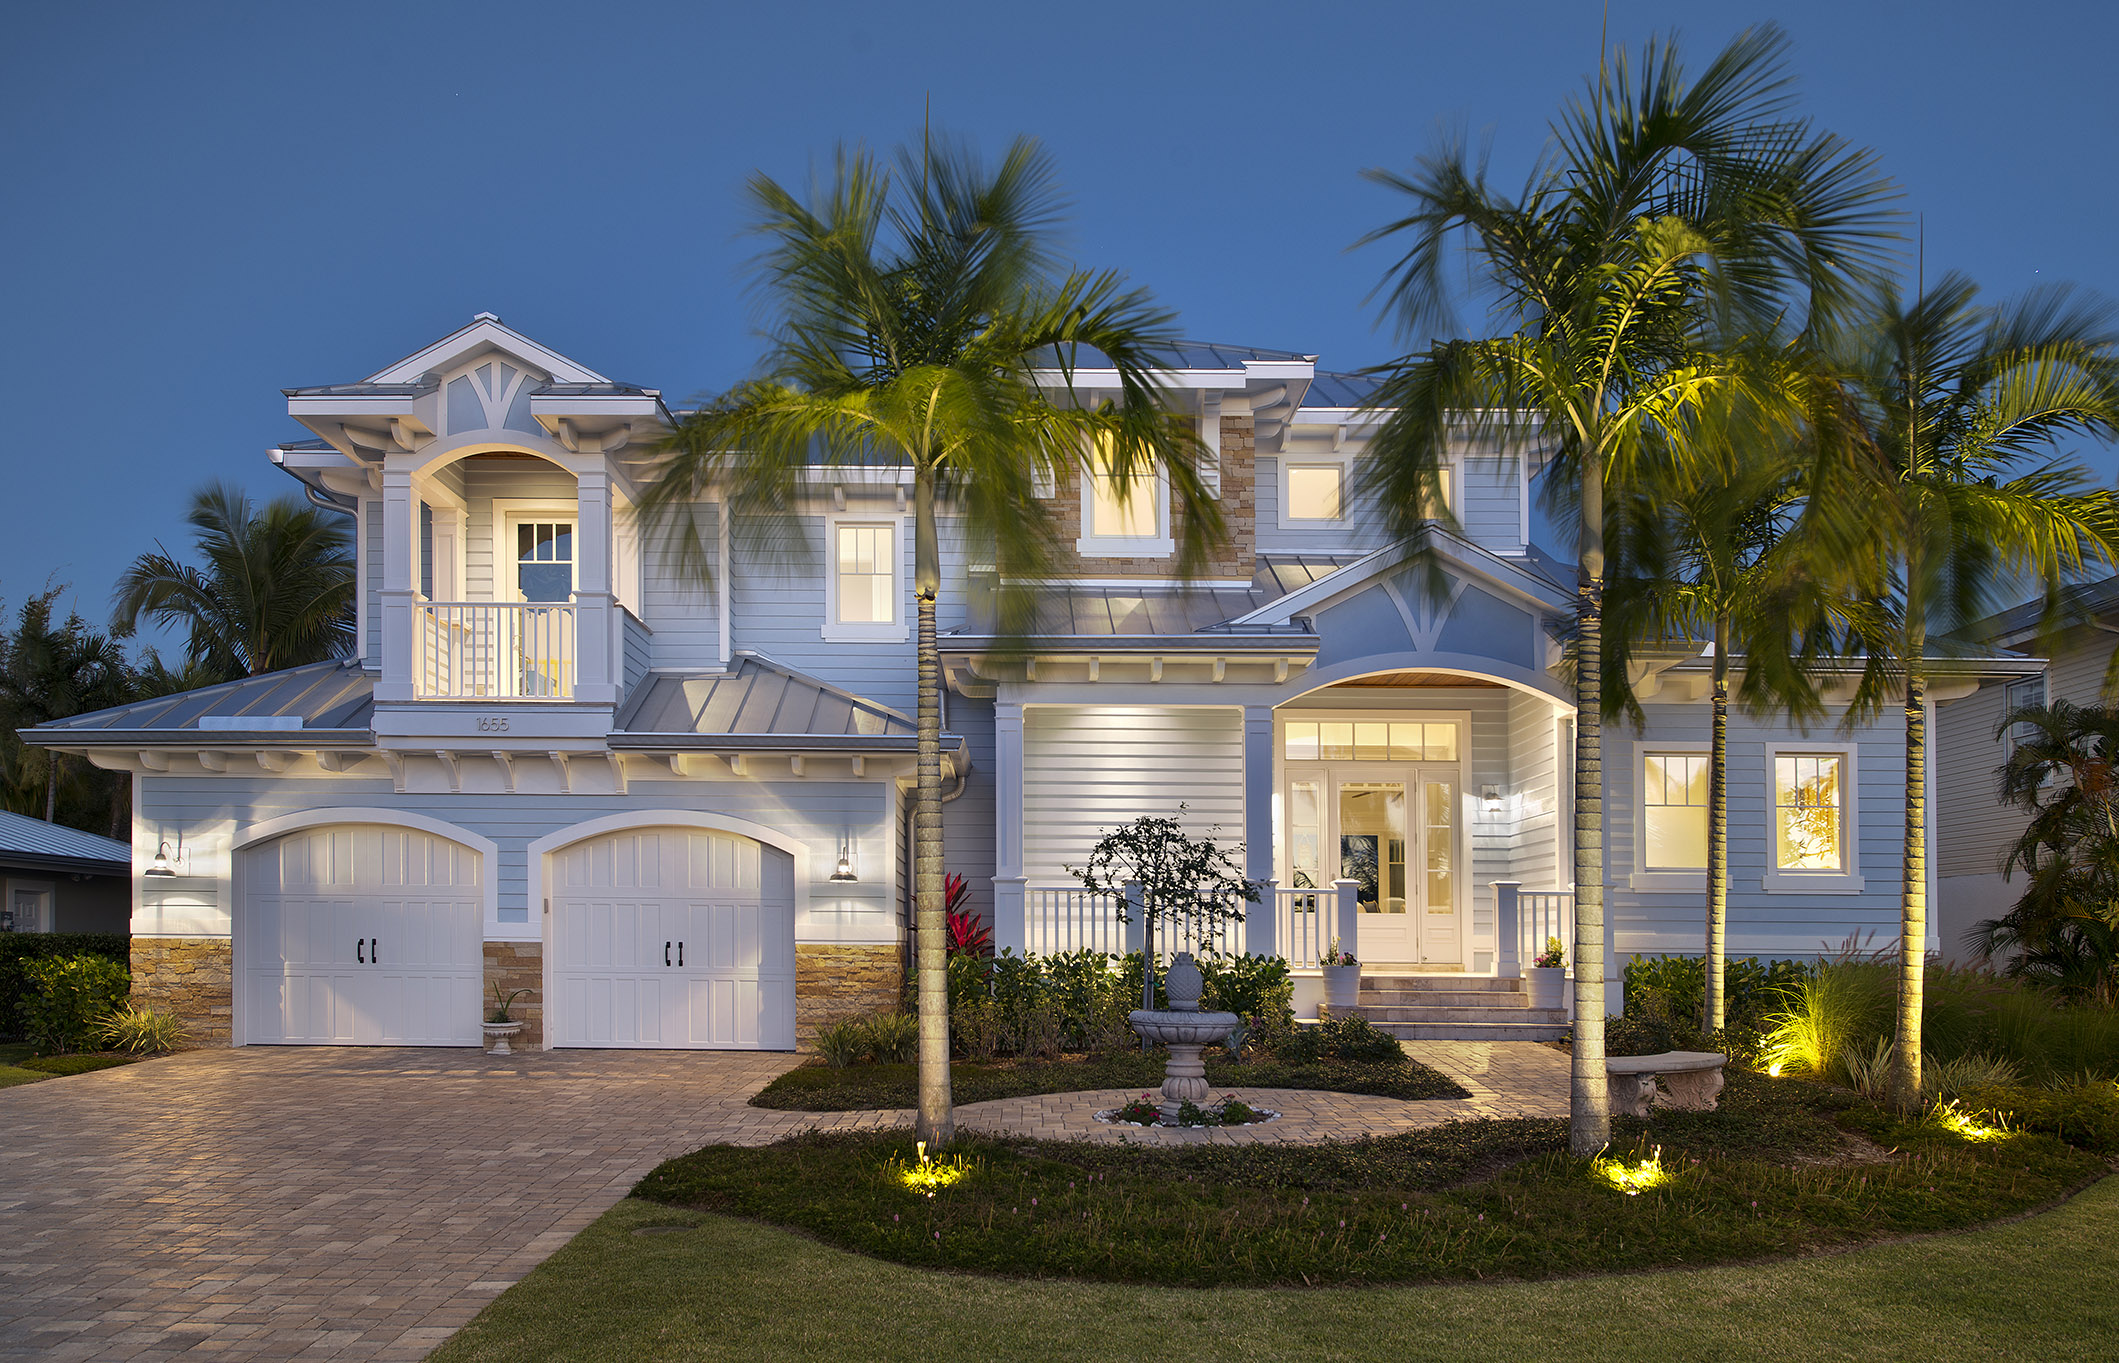 House design of america - Open And Inviting Beach House Plan 66307we Architectural Designs House Plans